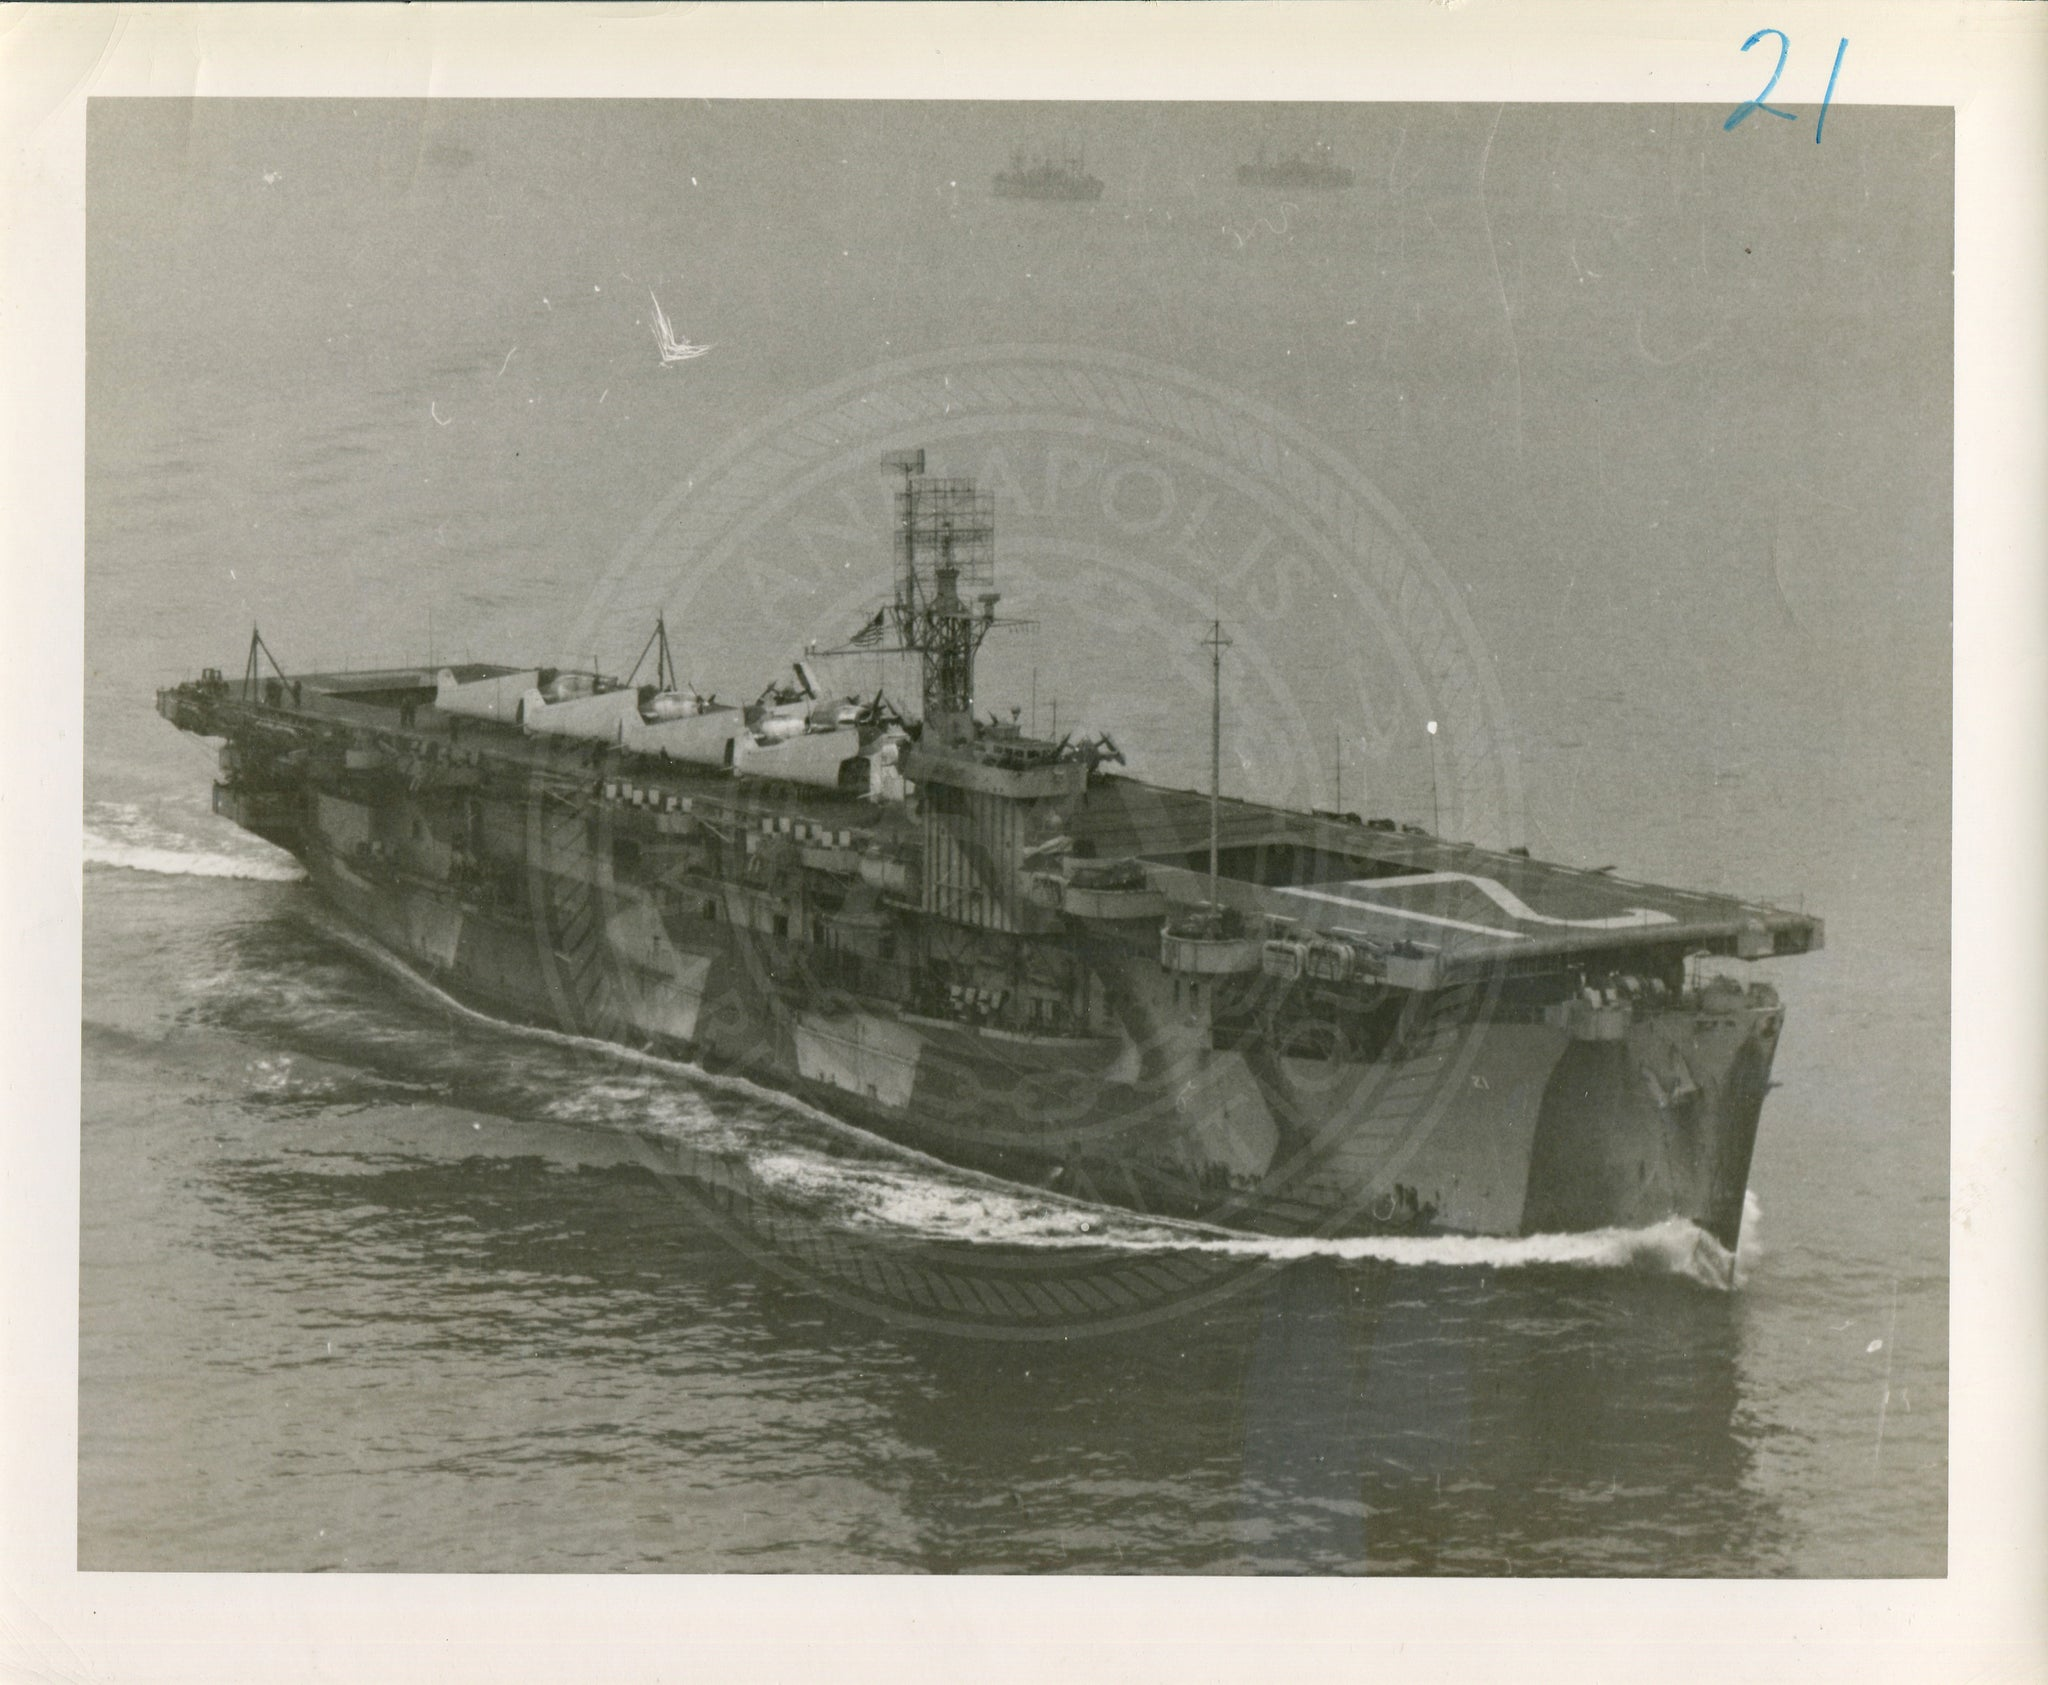 Official Navy Photo of WWII era USS Block Island (CVE-21) Aircraft Carrier - Annapolis Maritime Antiques